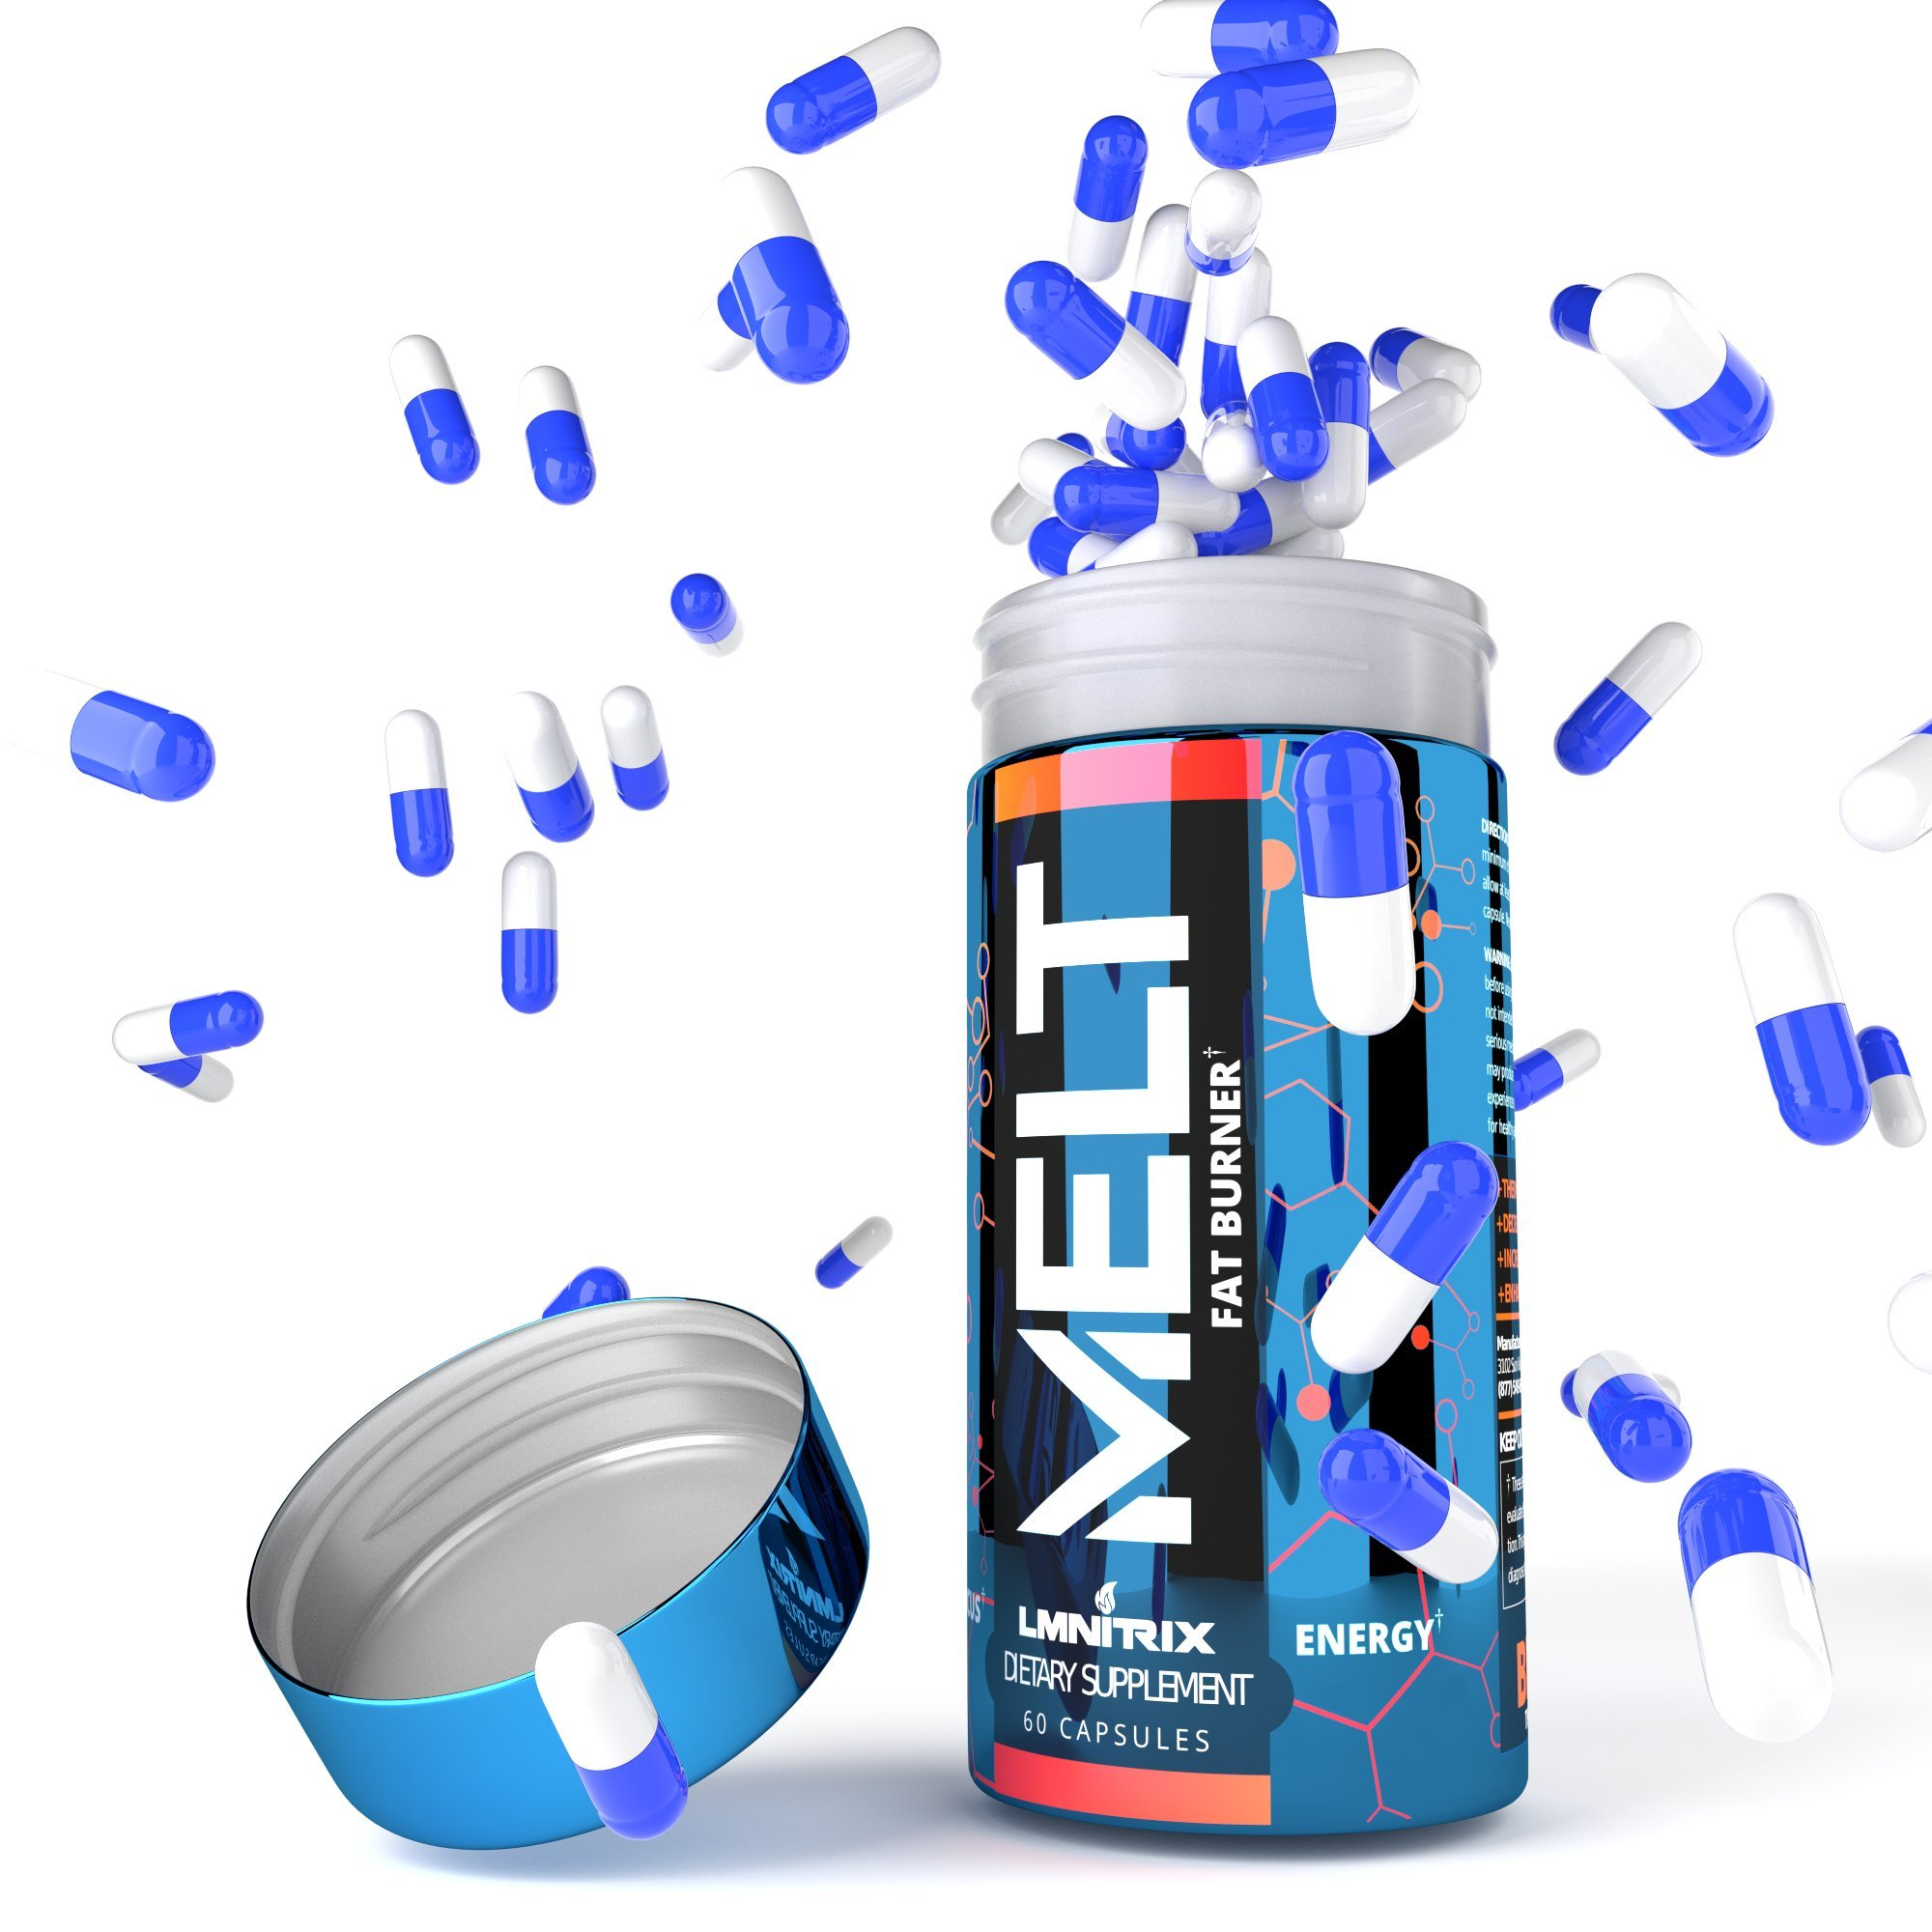 MELT - Best Thermogenic Fat Burner for Men & Women - Appetite Suppressant Pills for Fast Weight Loss - Real Results Guaranteed - 60 caps by LMNITRIX